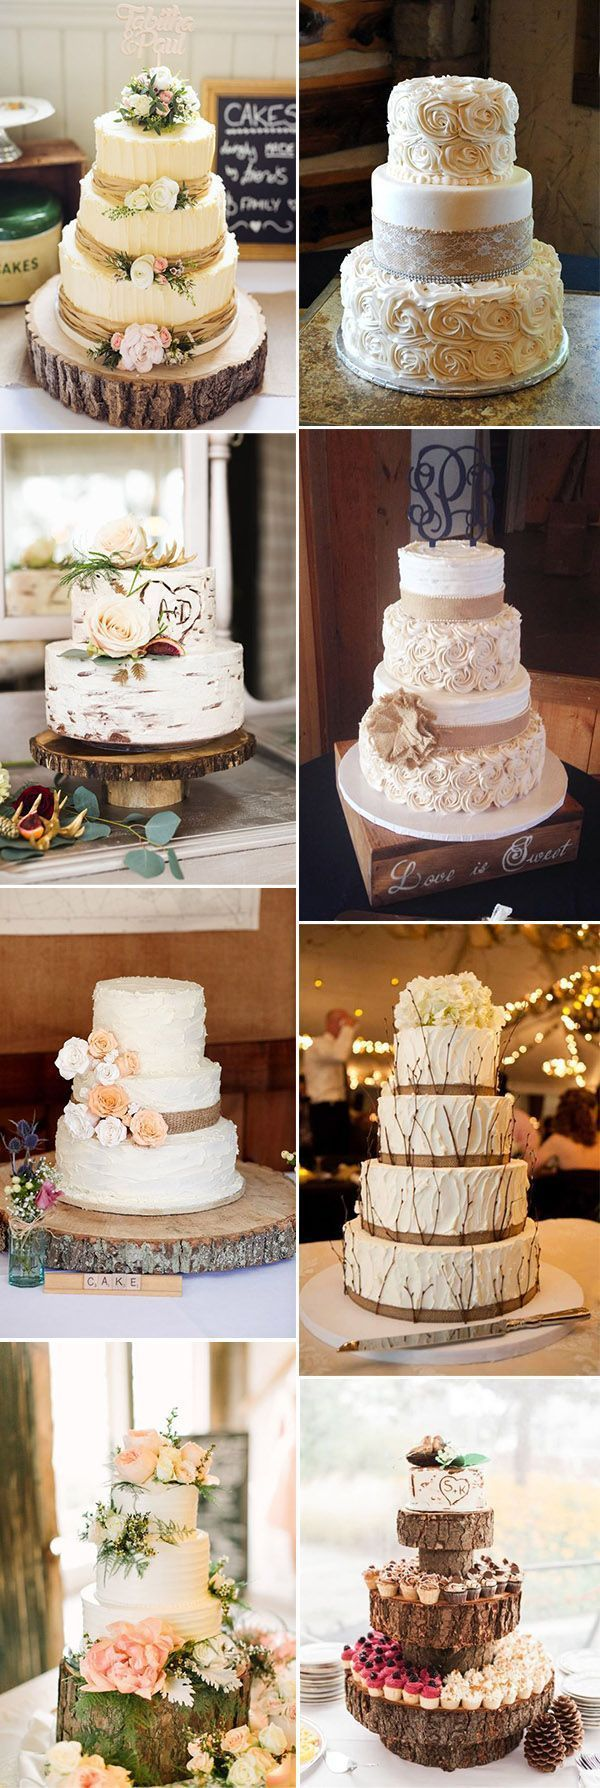 stealworthy wedding cake ideas for your special day for the